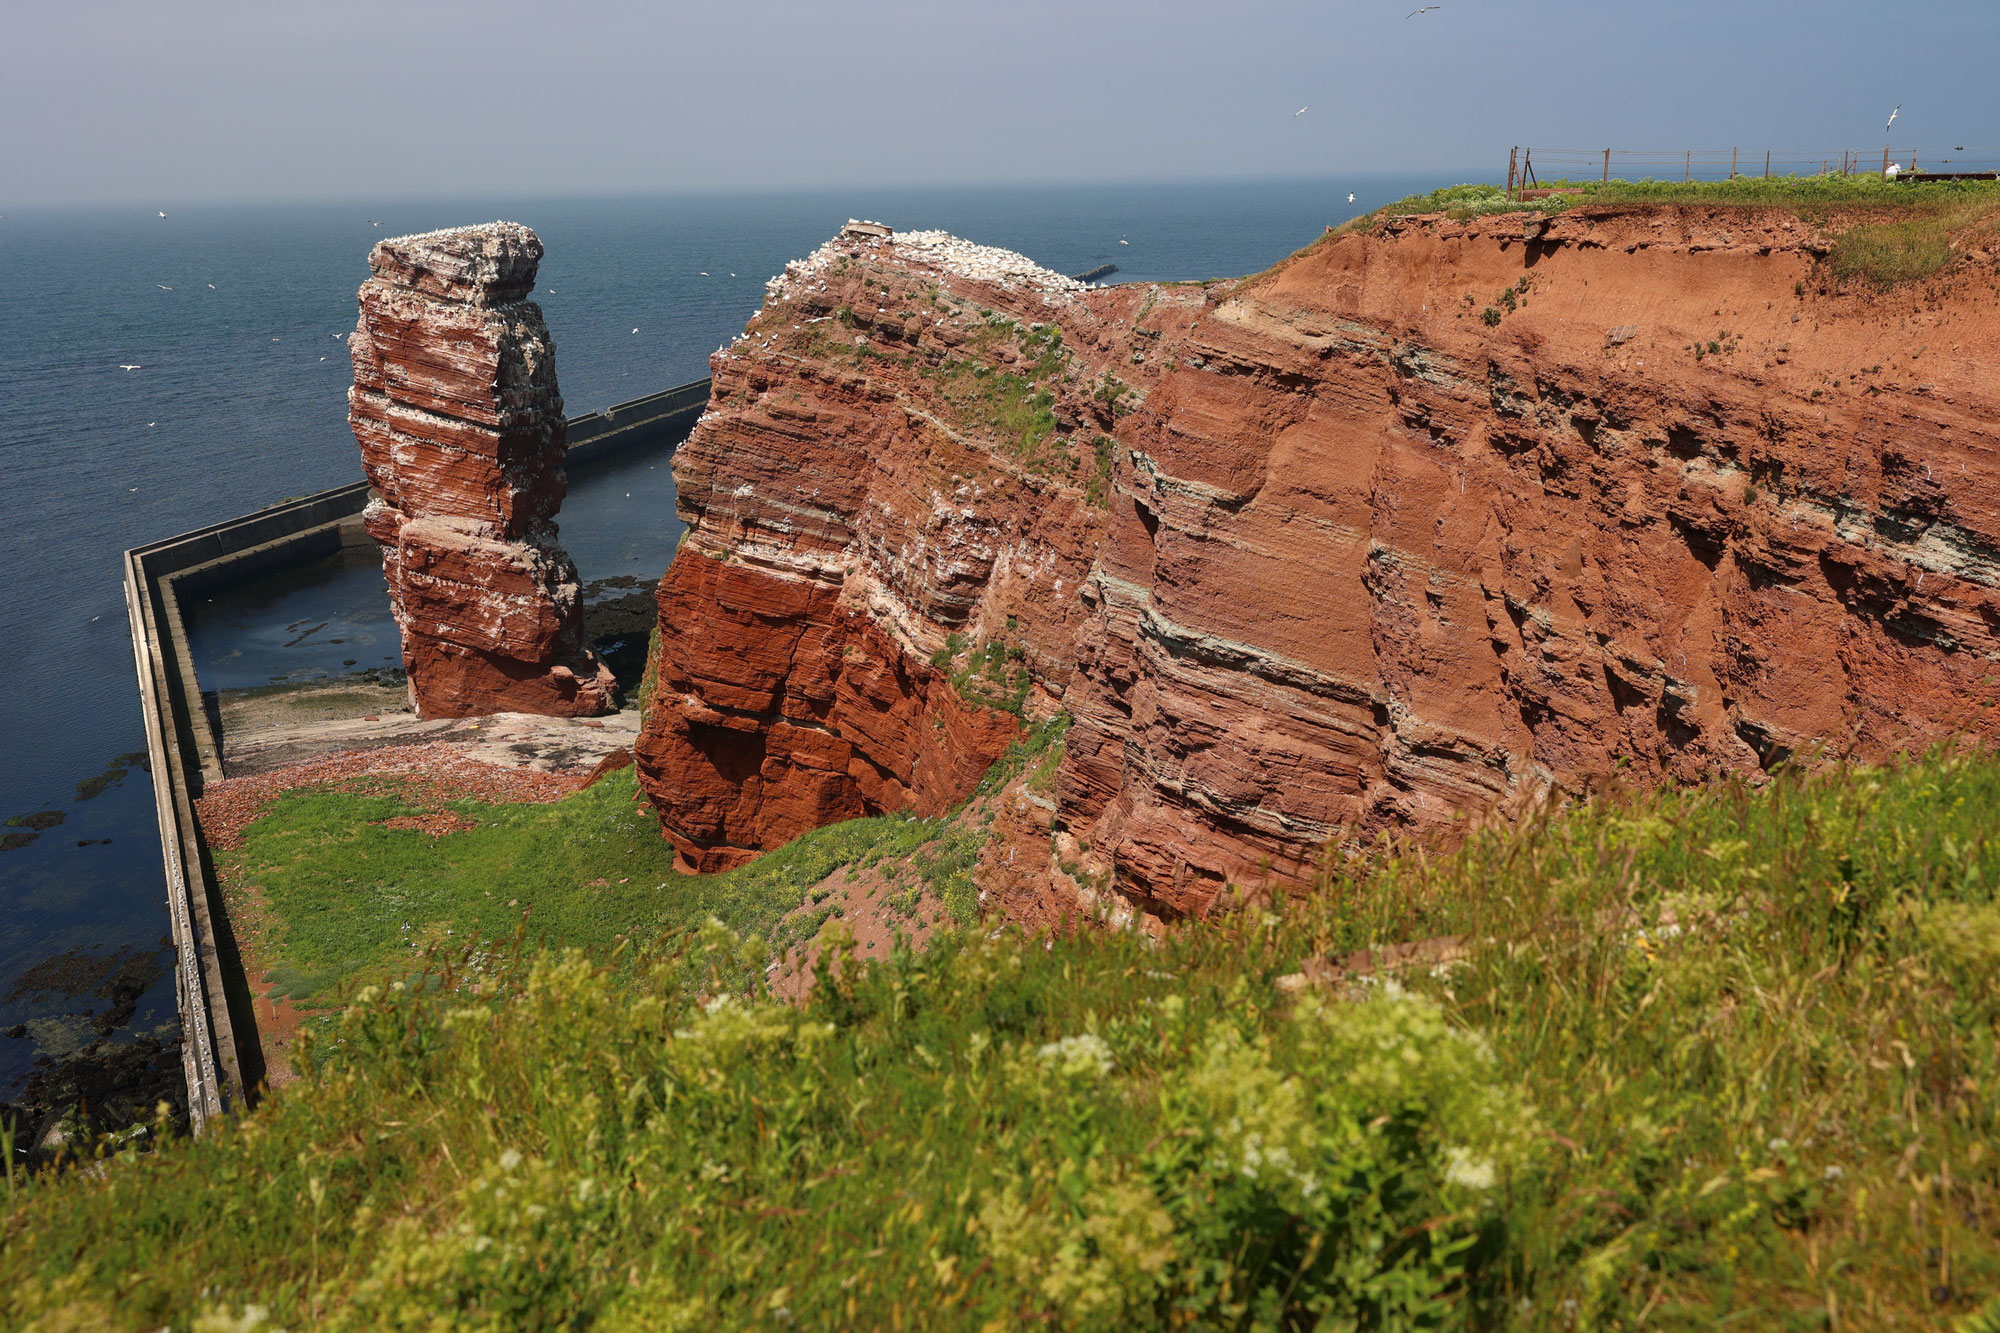 Tag 4 - Helgoland